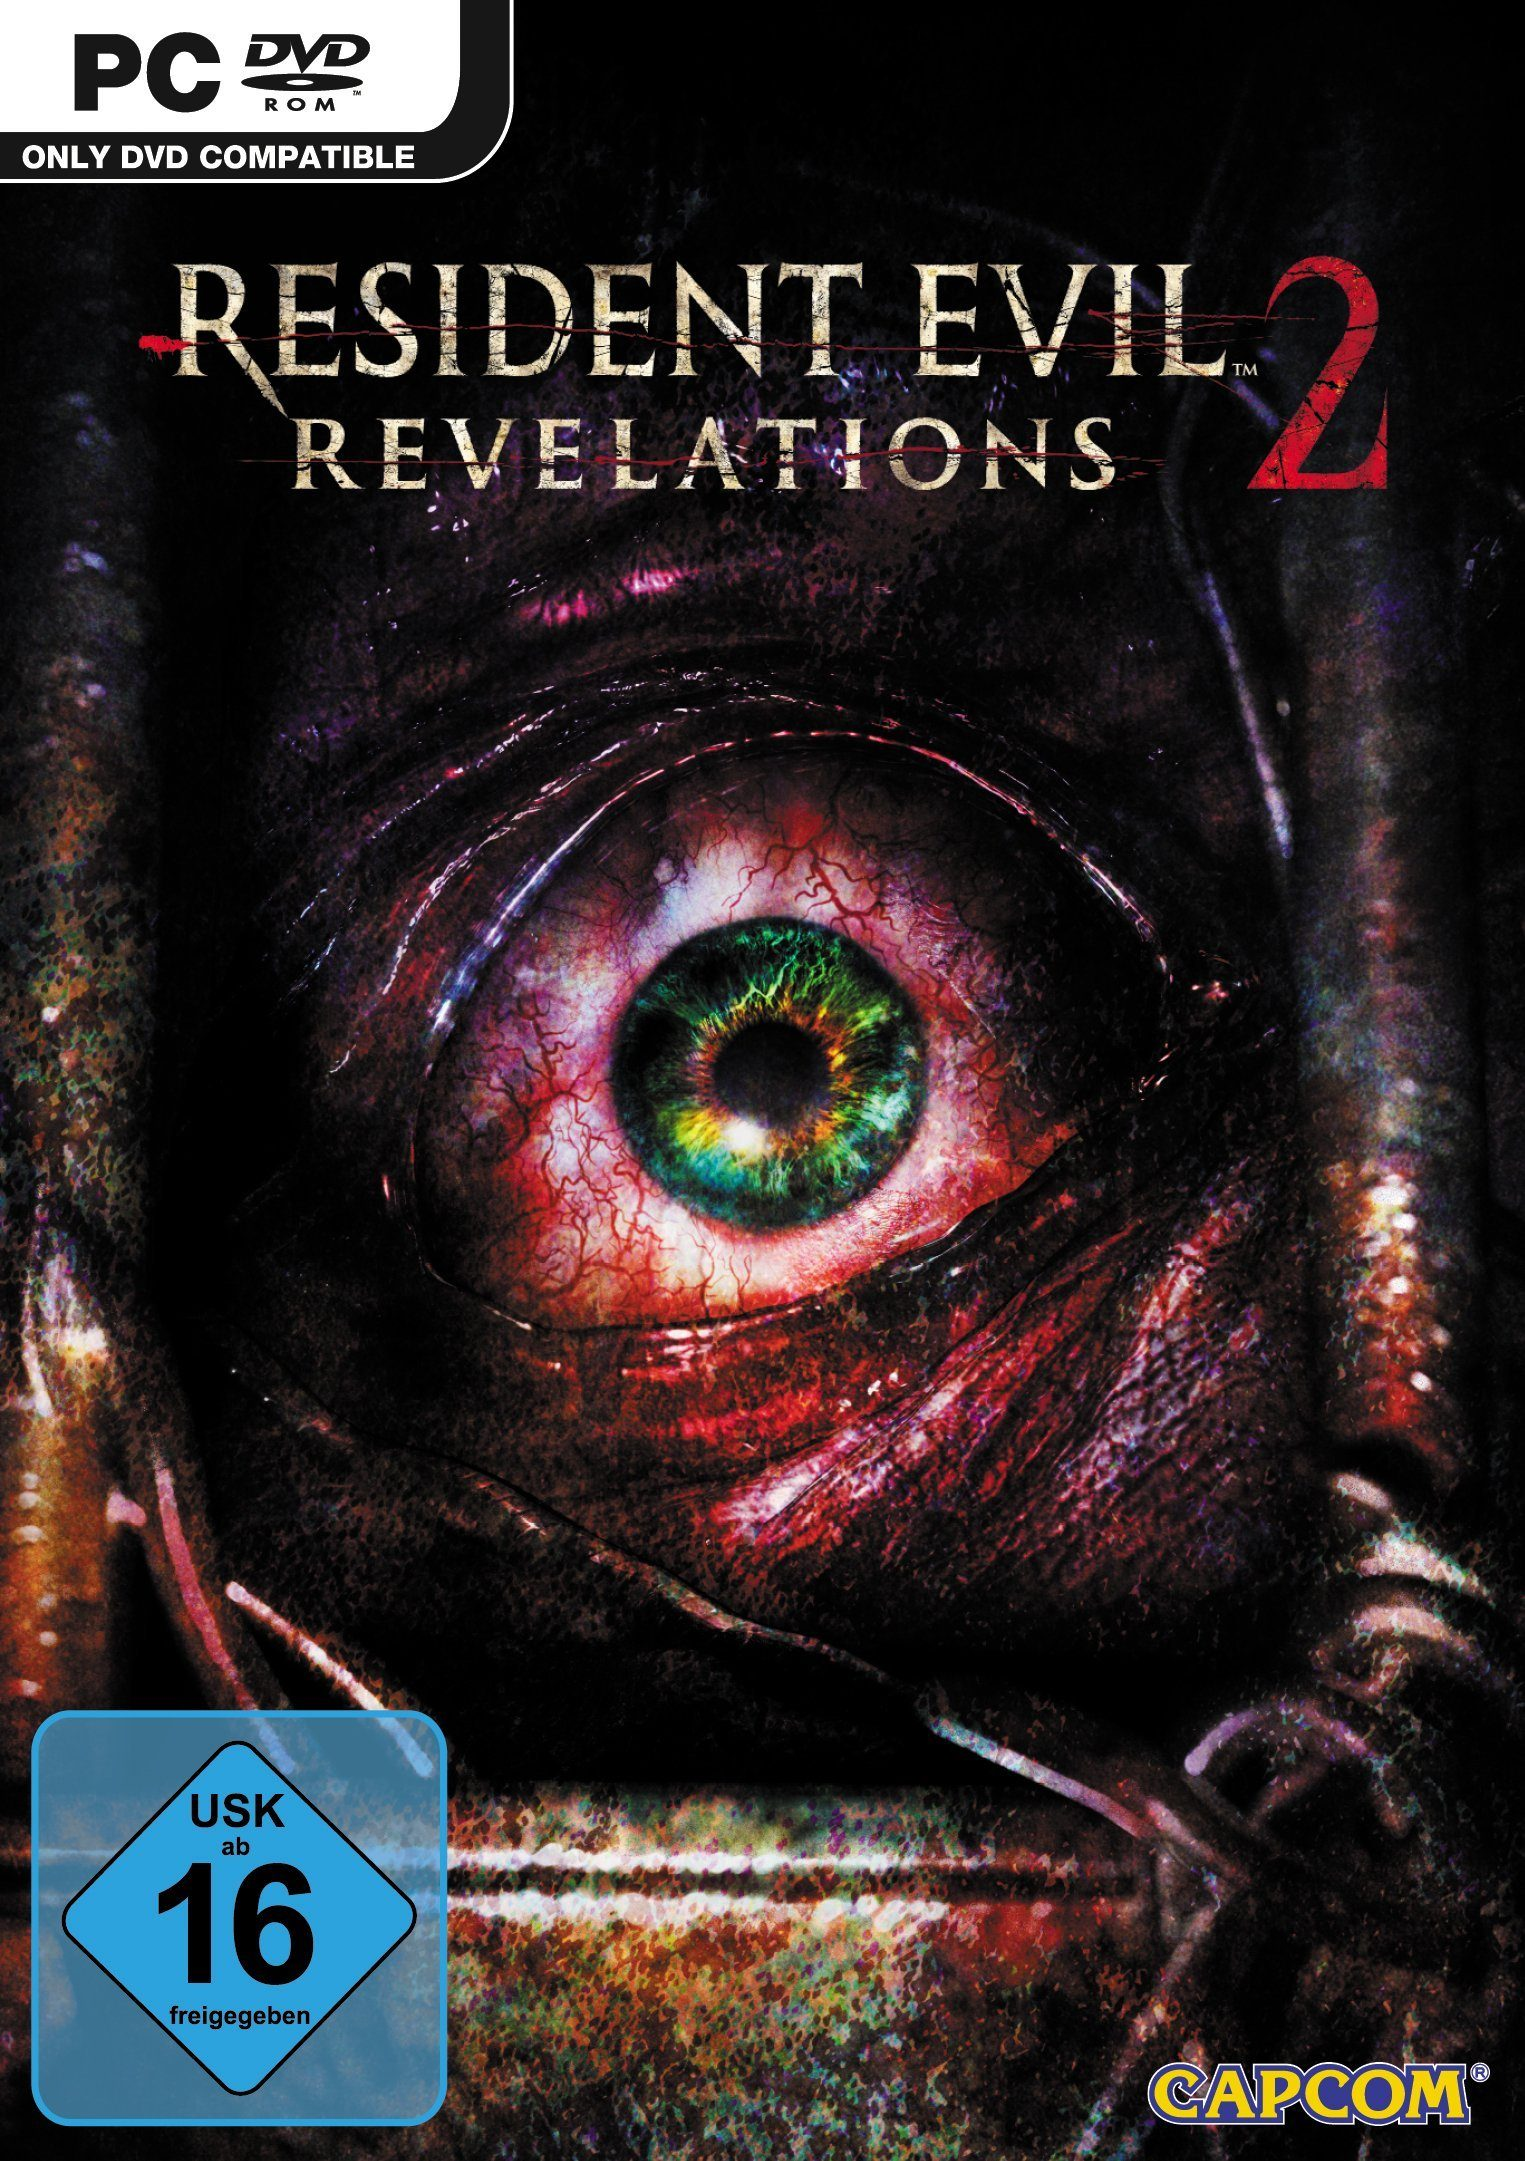 Capcom Resident Evil: Revelations 2 »(PC)«